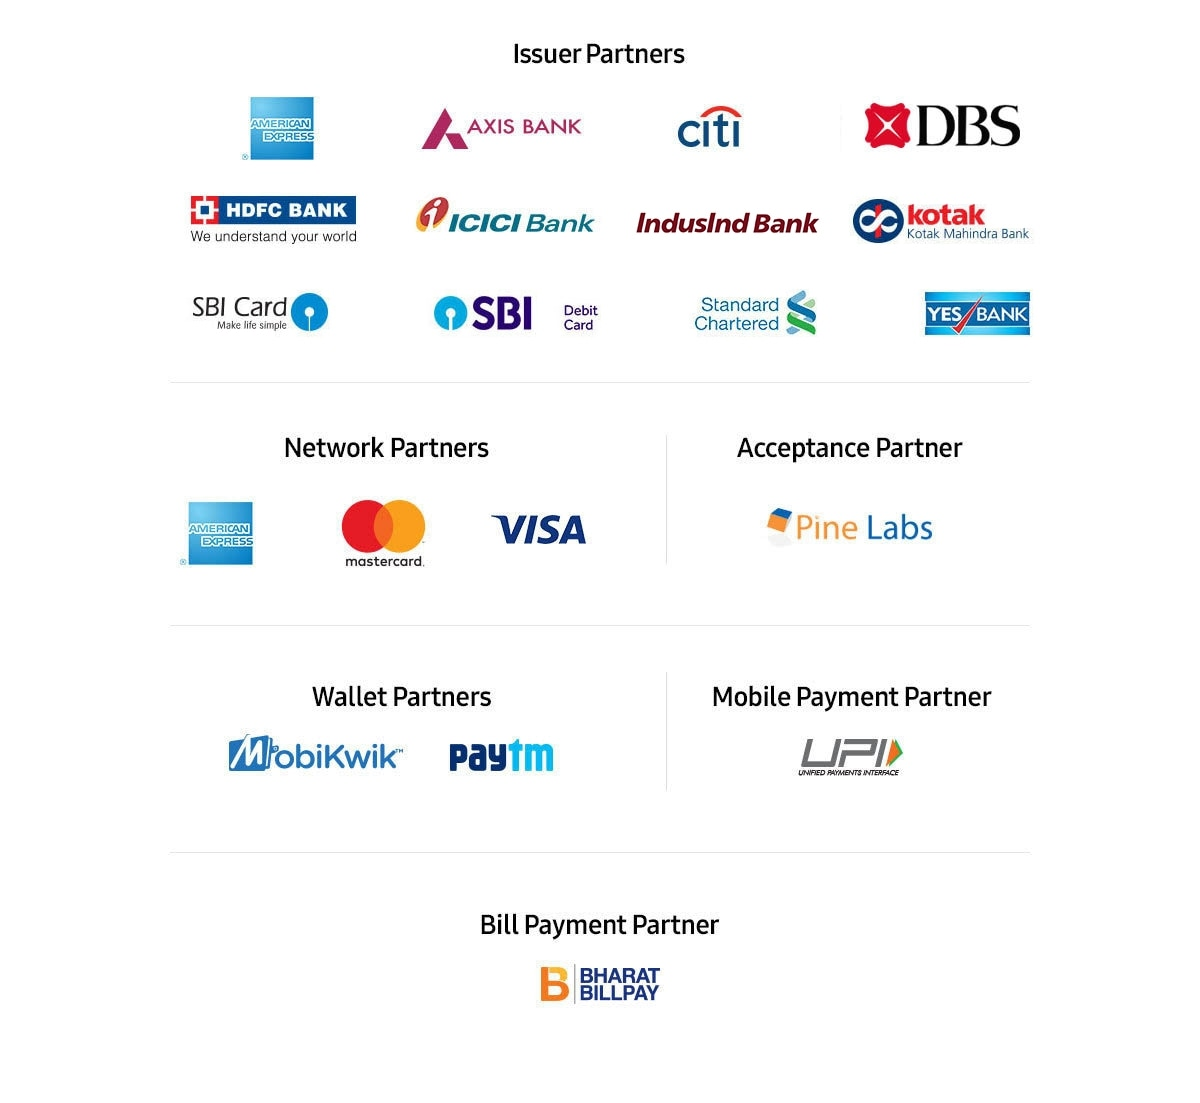 Strategic Partners with Samsung Pay